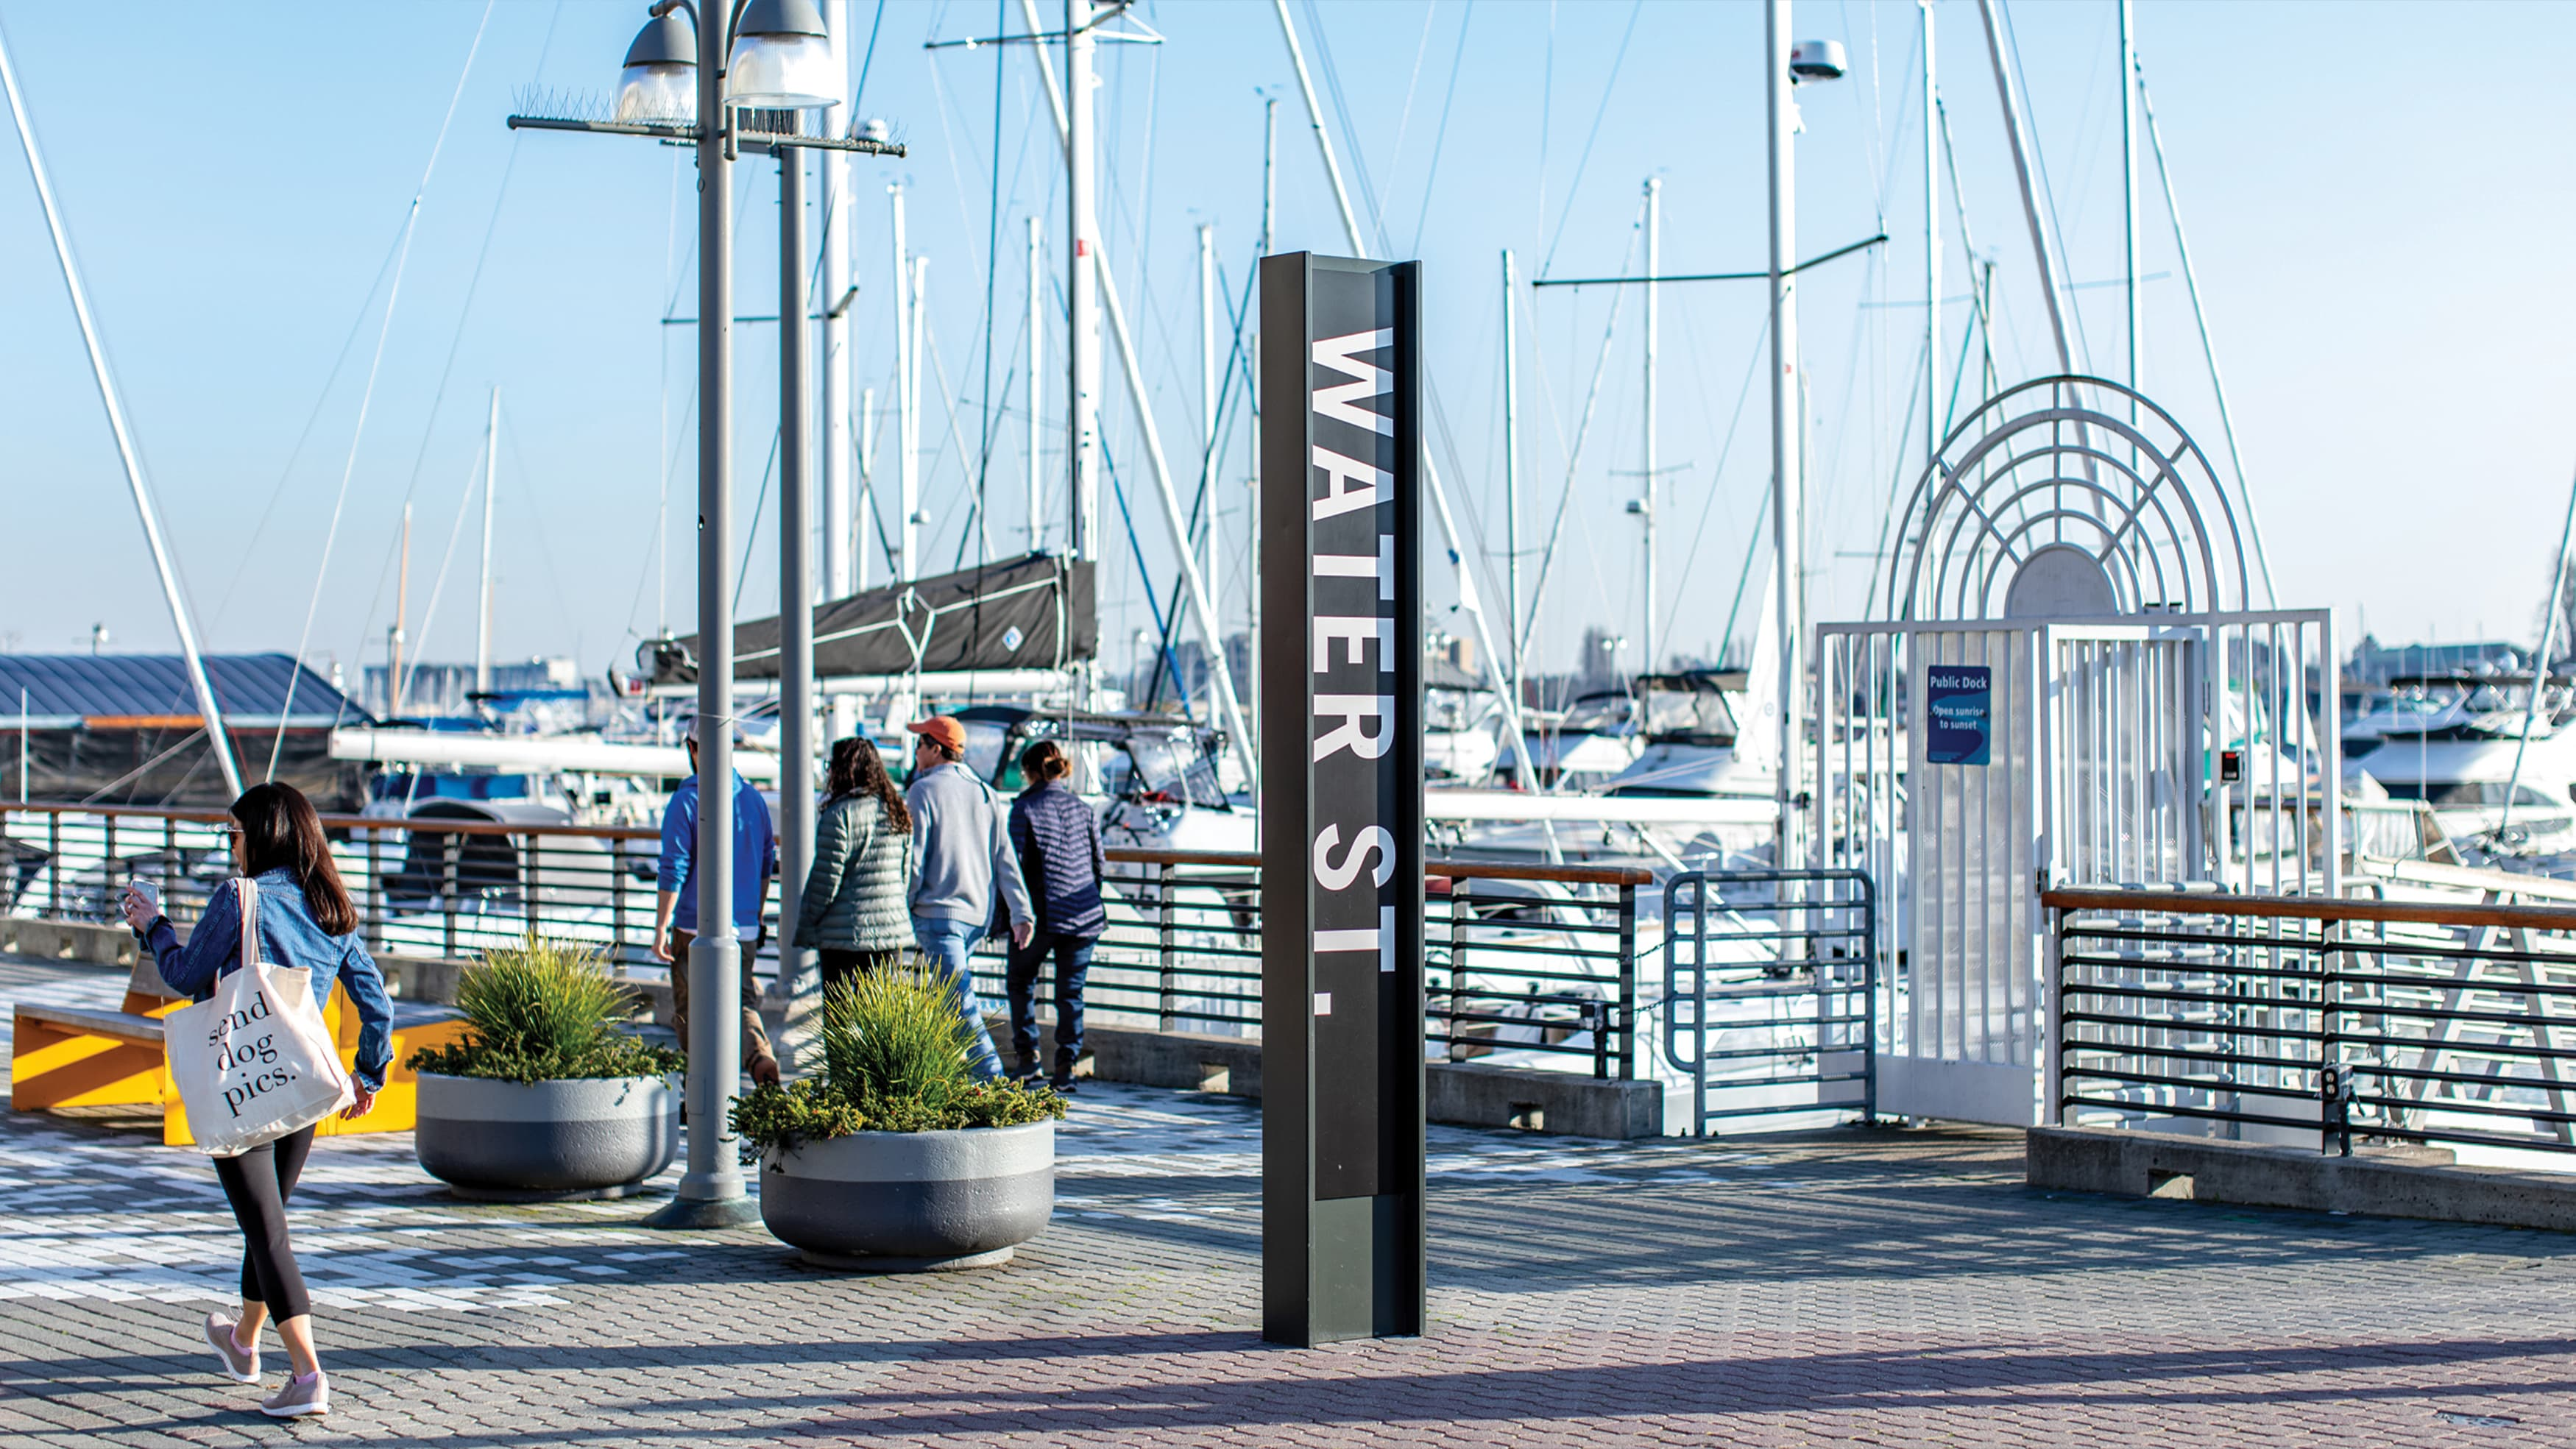 Oakland's historic Water Street at Jack London Square signage and pedestrians walking